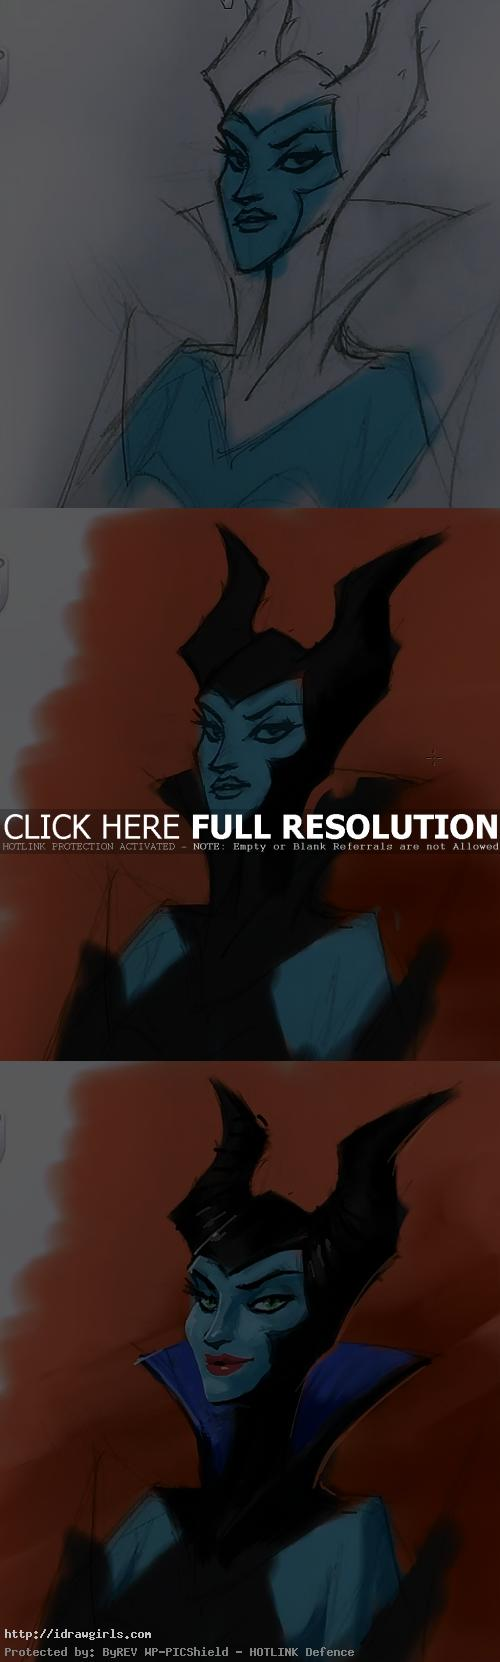 maleficent painting tutorial sketchbook pro Painting Maleficent tutorial using Sketchbook Pro 6